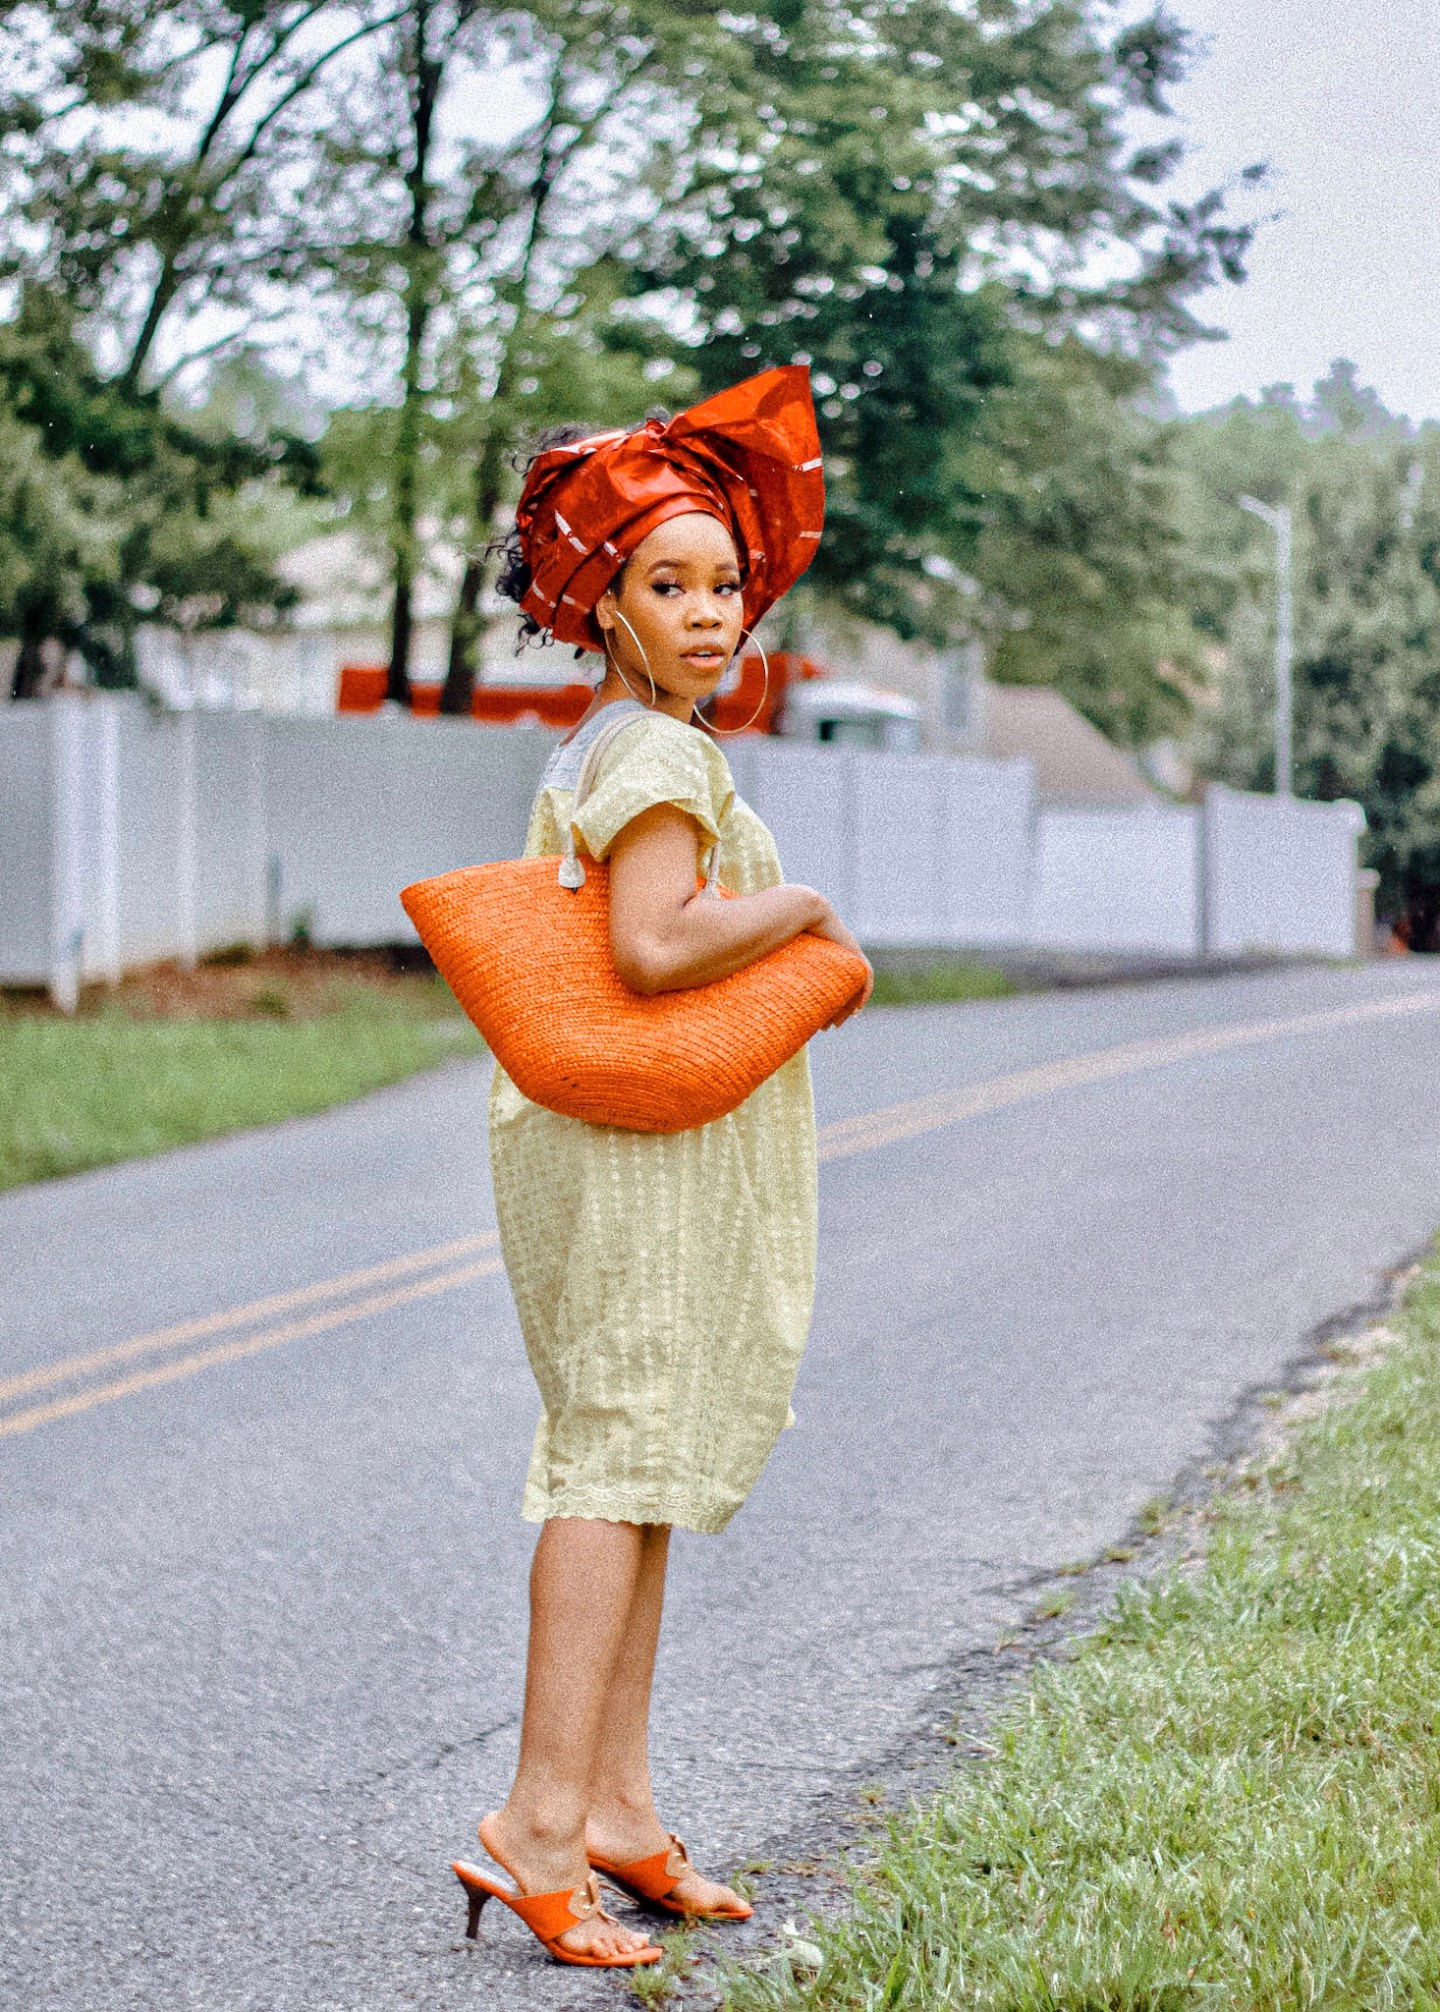 AFRICAN STREET FASHION INSPIRED BY BLACK IS KING